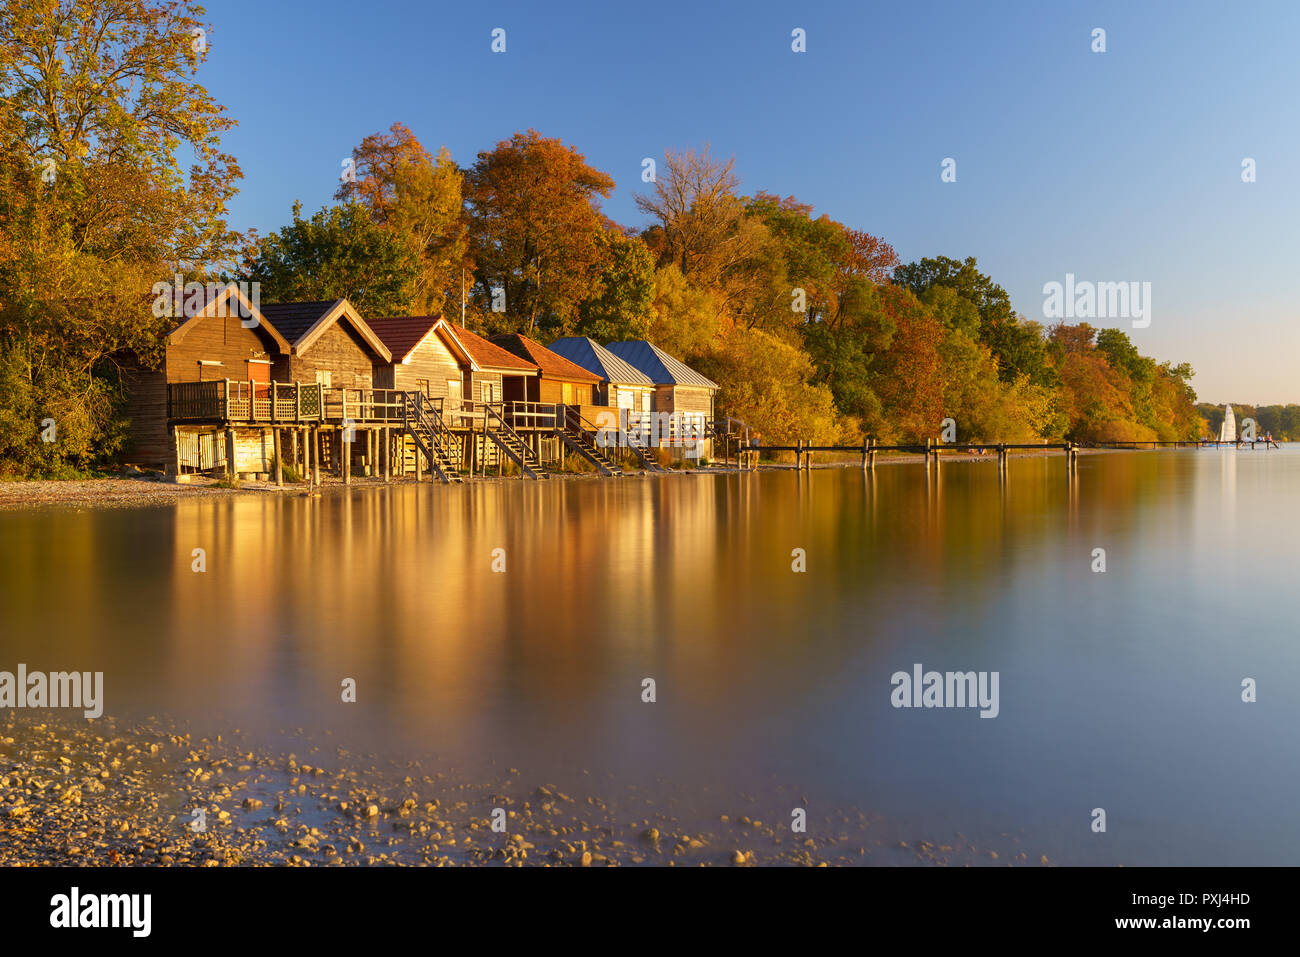 Sunset at Ammersee - Stock Image